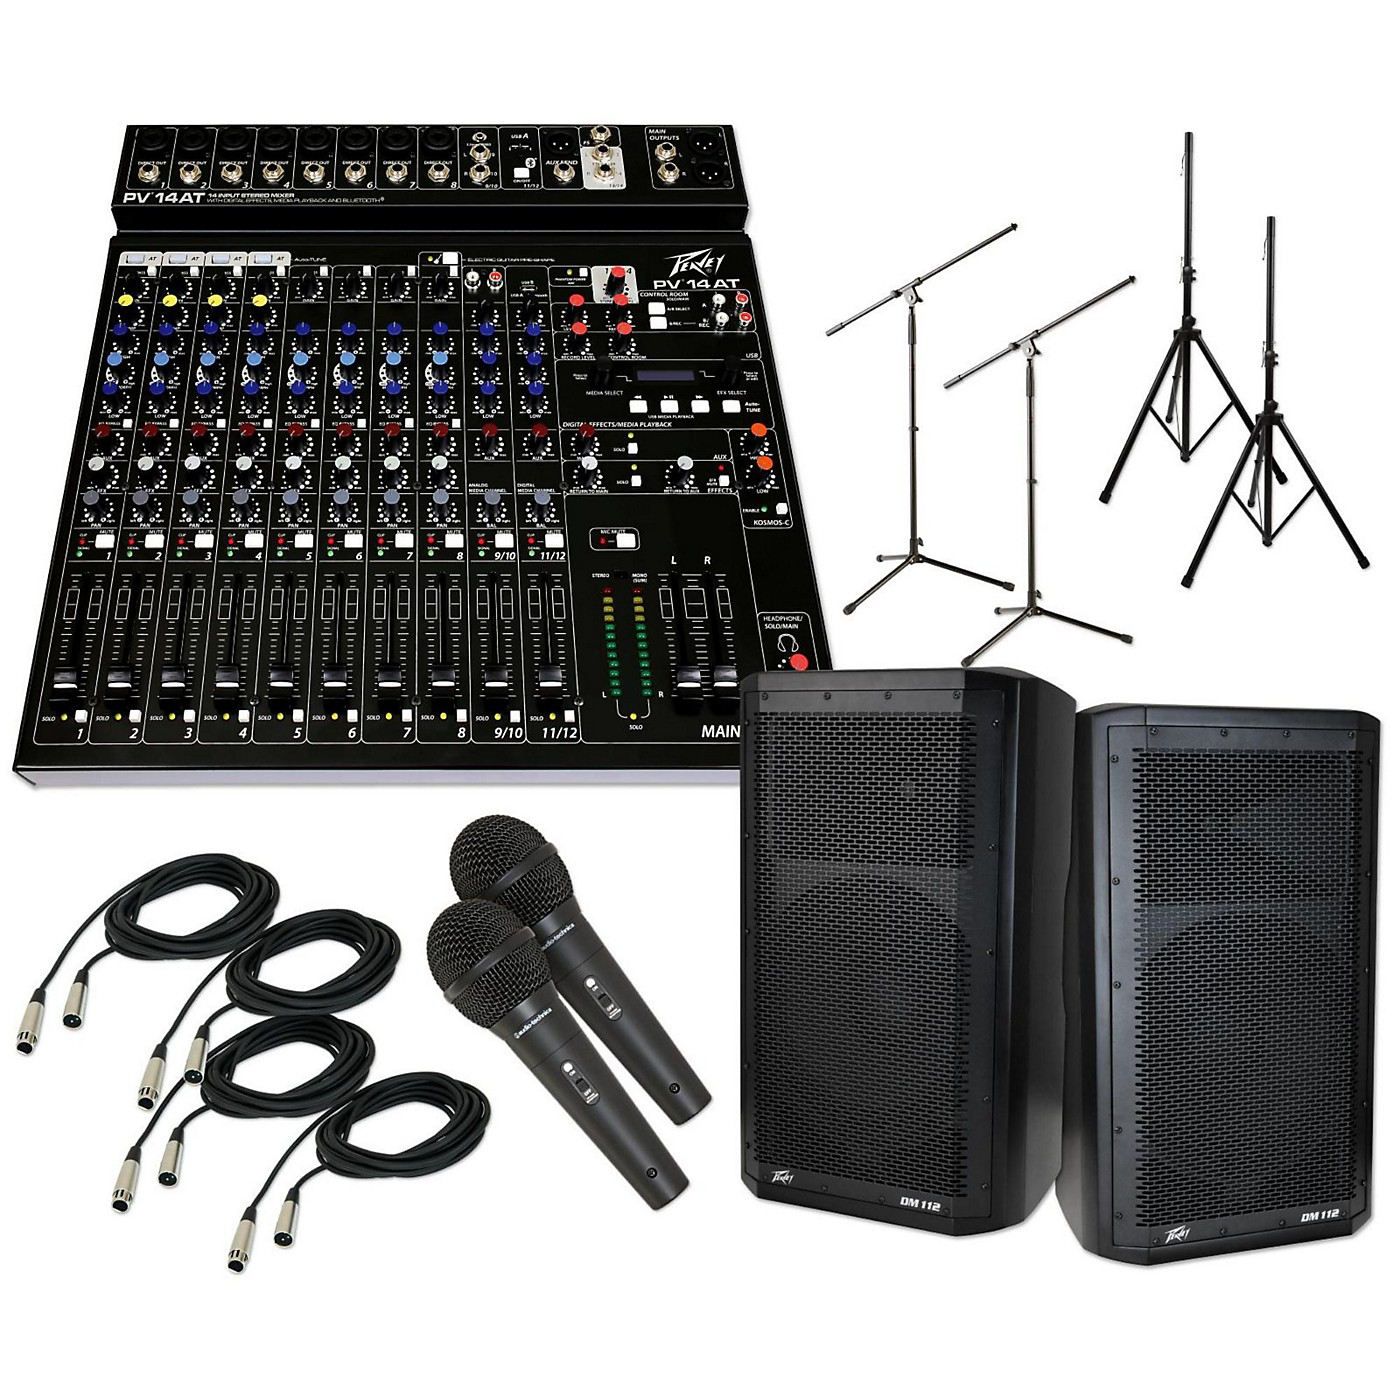 Peavey PV 14 AT with DM 112 PA Package thumbnail